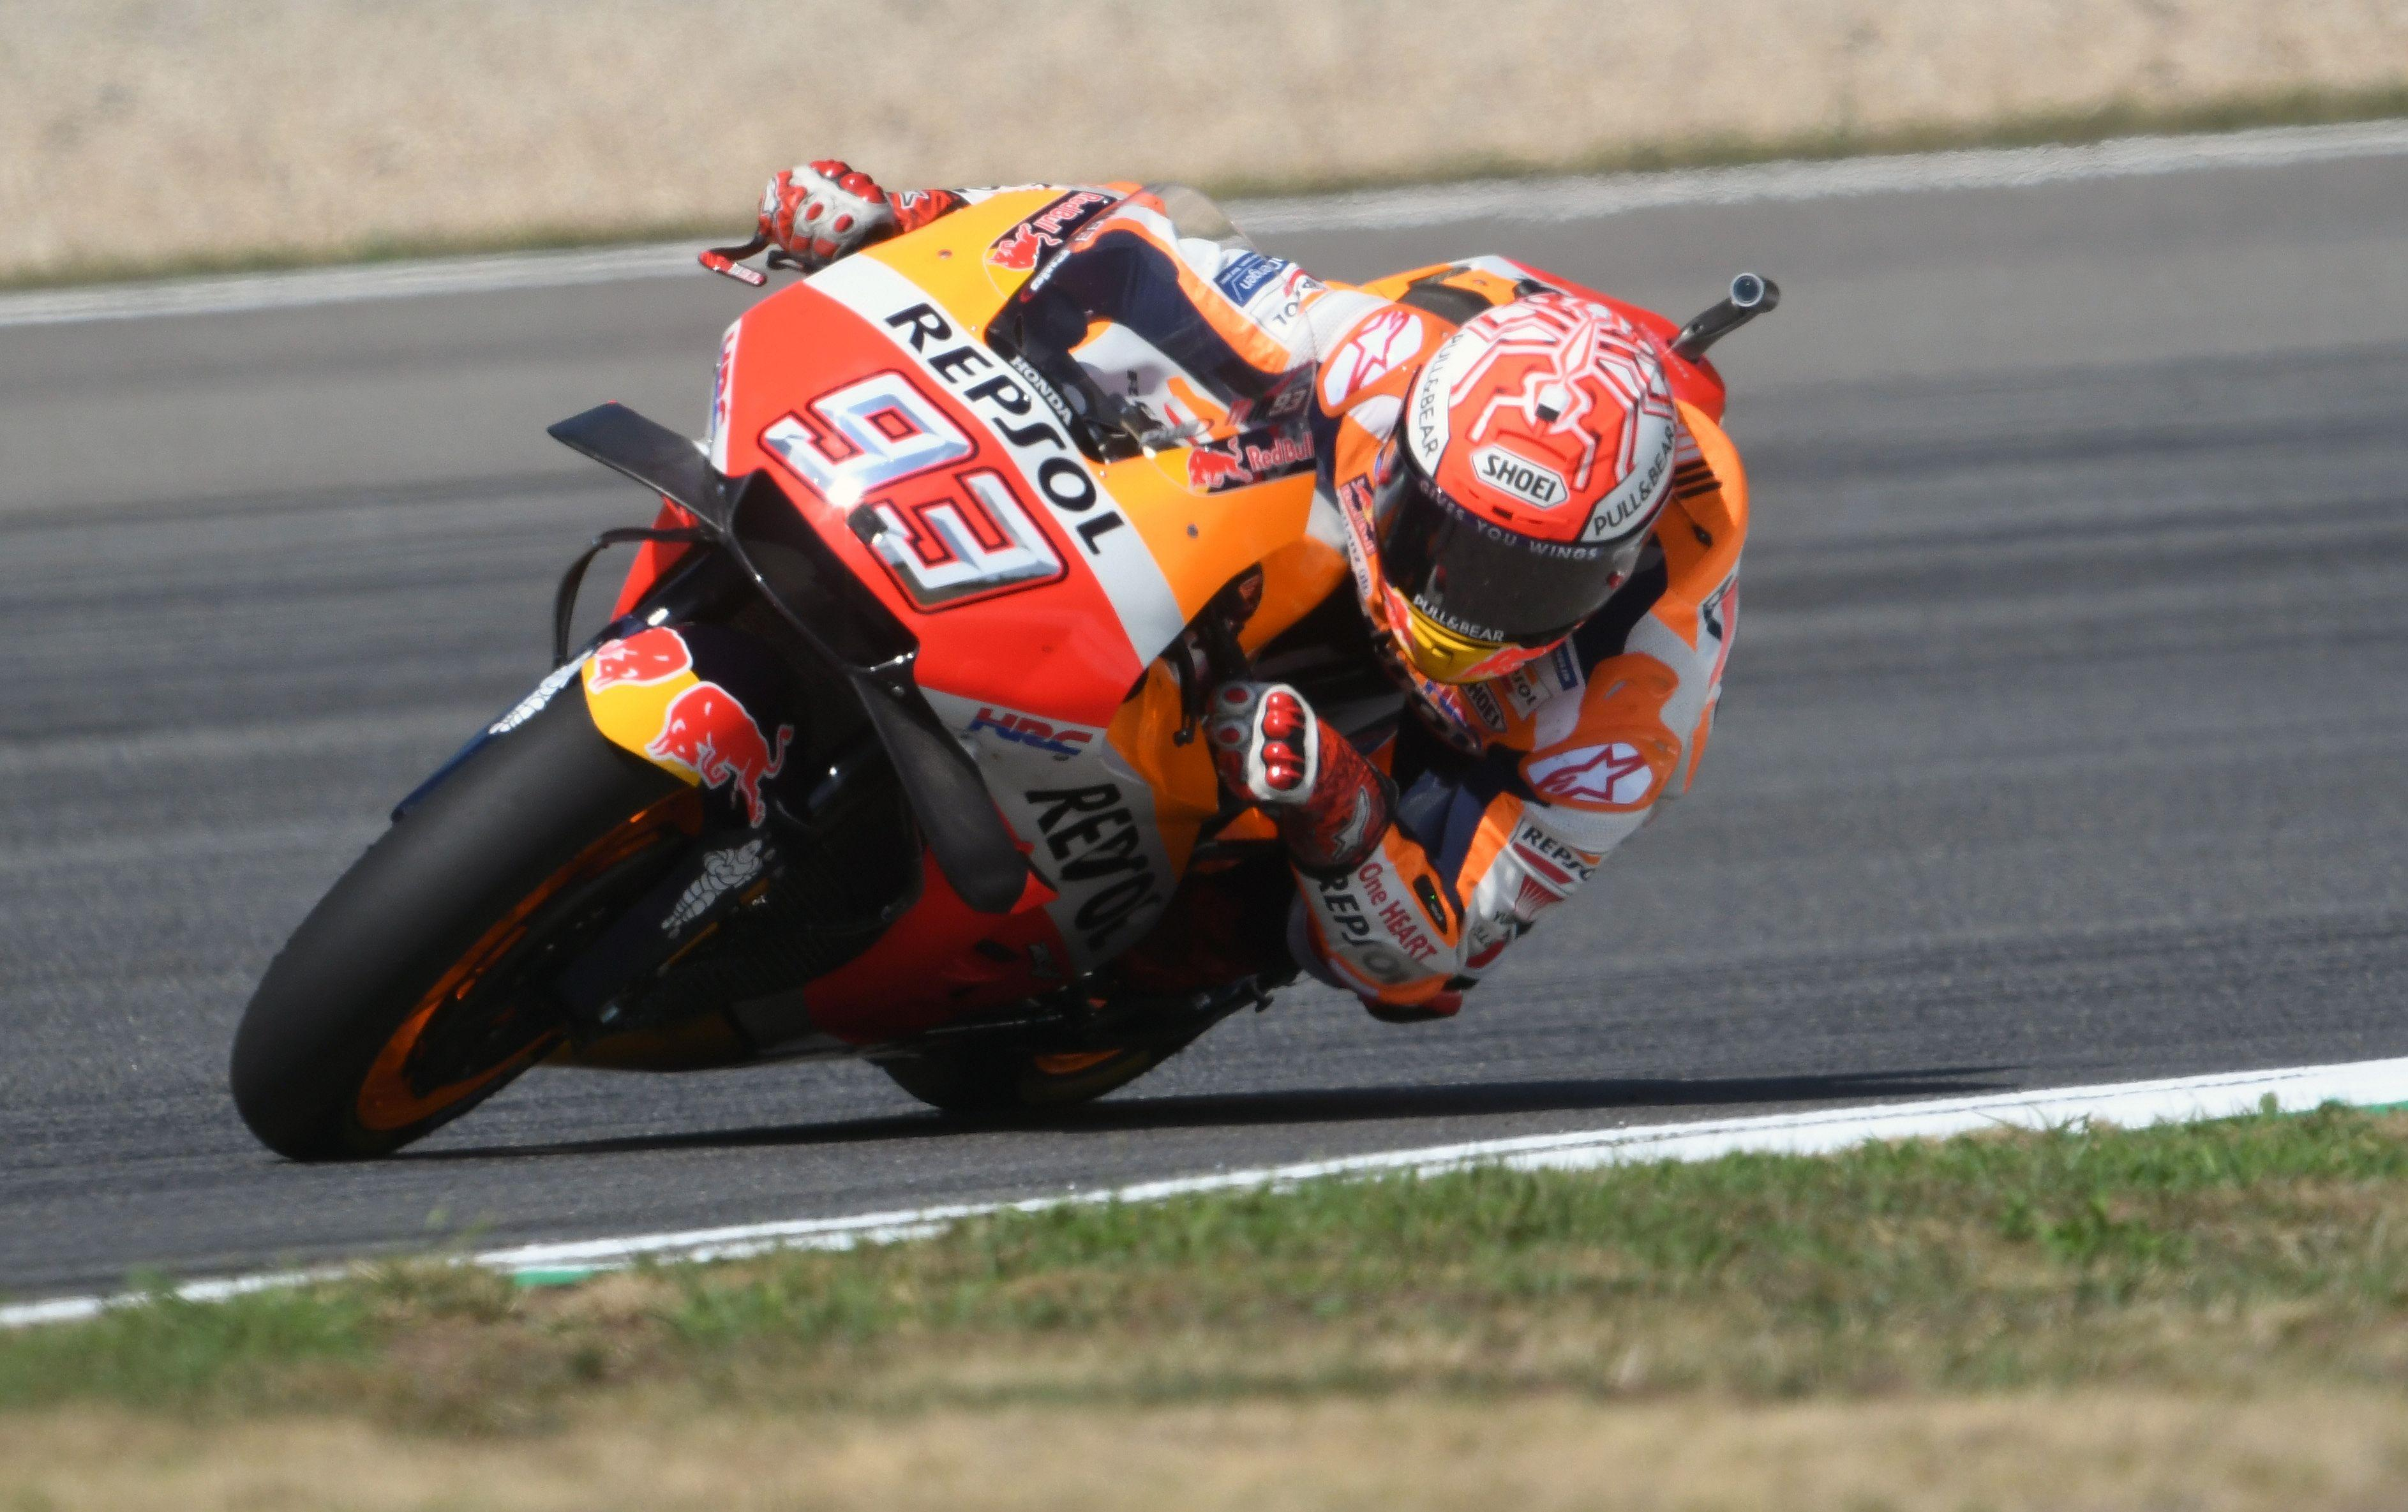 Marc Marquez is looking unstoppable in MotoGP at the moment